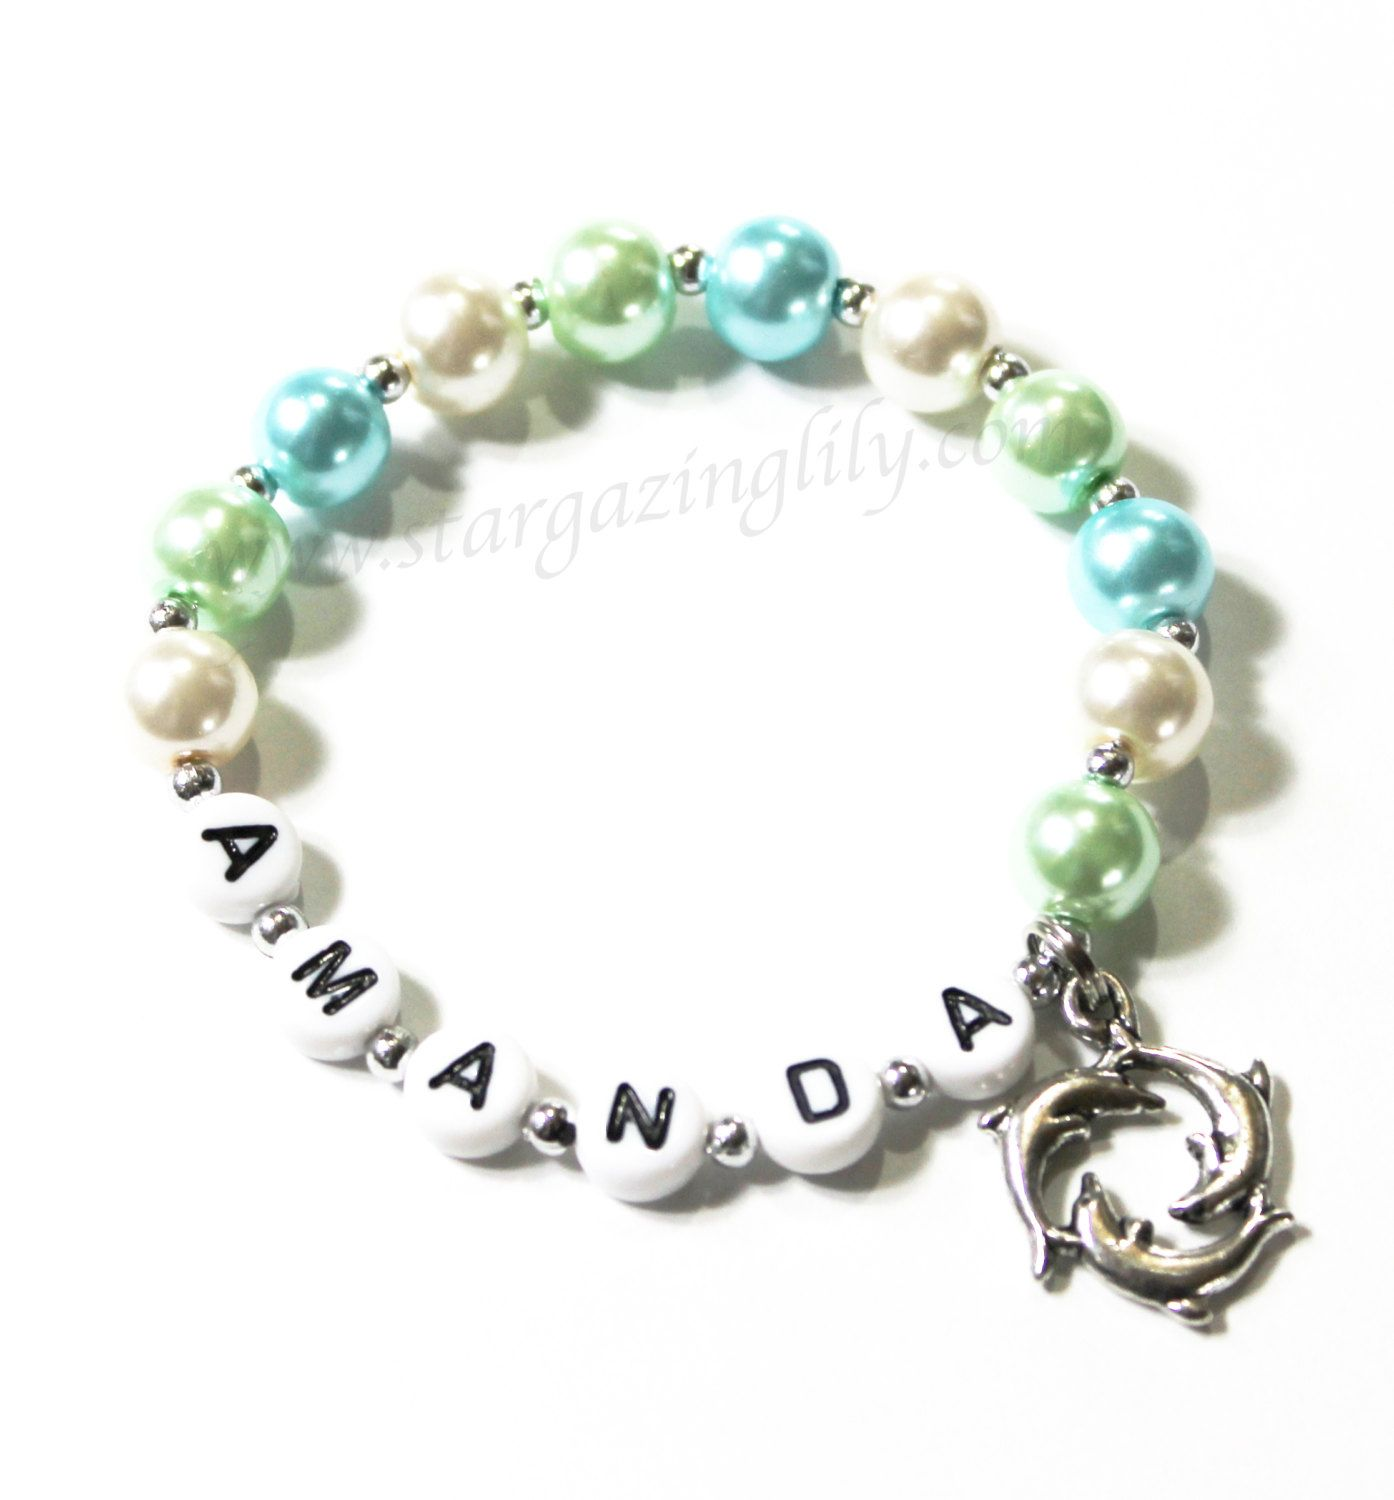 Dolphin Charm Bracelet: Dolphin Charm Bracelet Personalized With Name. You Choose